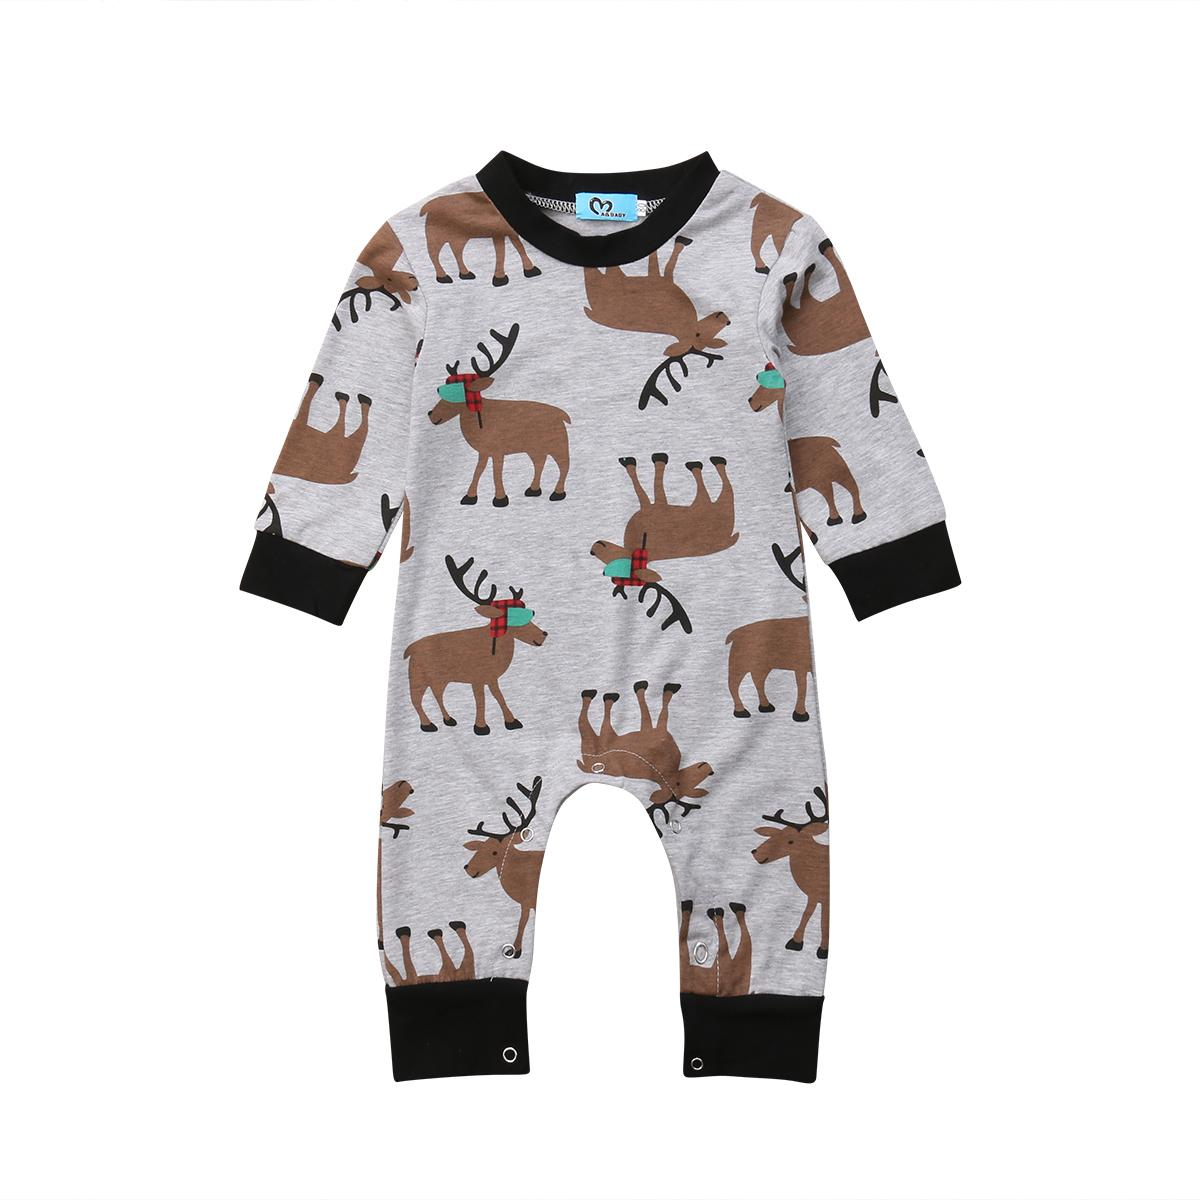 b2d0df0b0 Baby Boys Cute Animals Romper Long Sleeve Cotton Jumpsuit Outfits Clothes  Toddler Baby Boys Girls Clothing Christmas 0-18M Y18102907 Online with ...